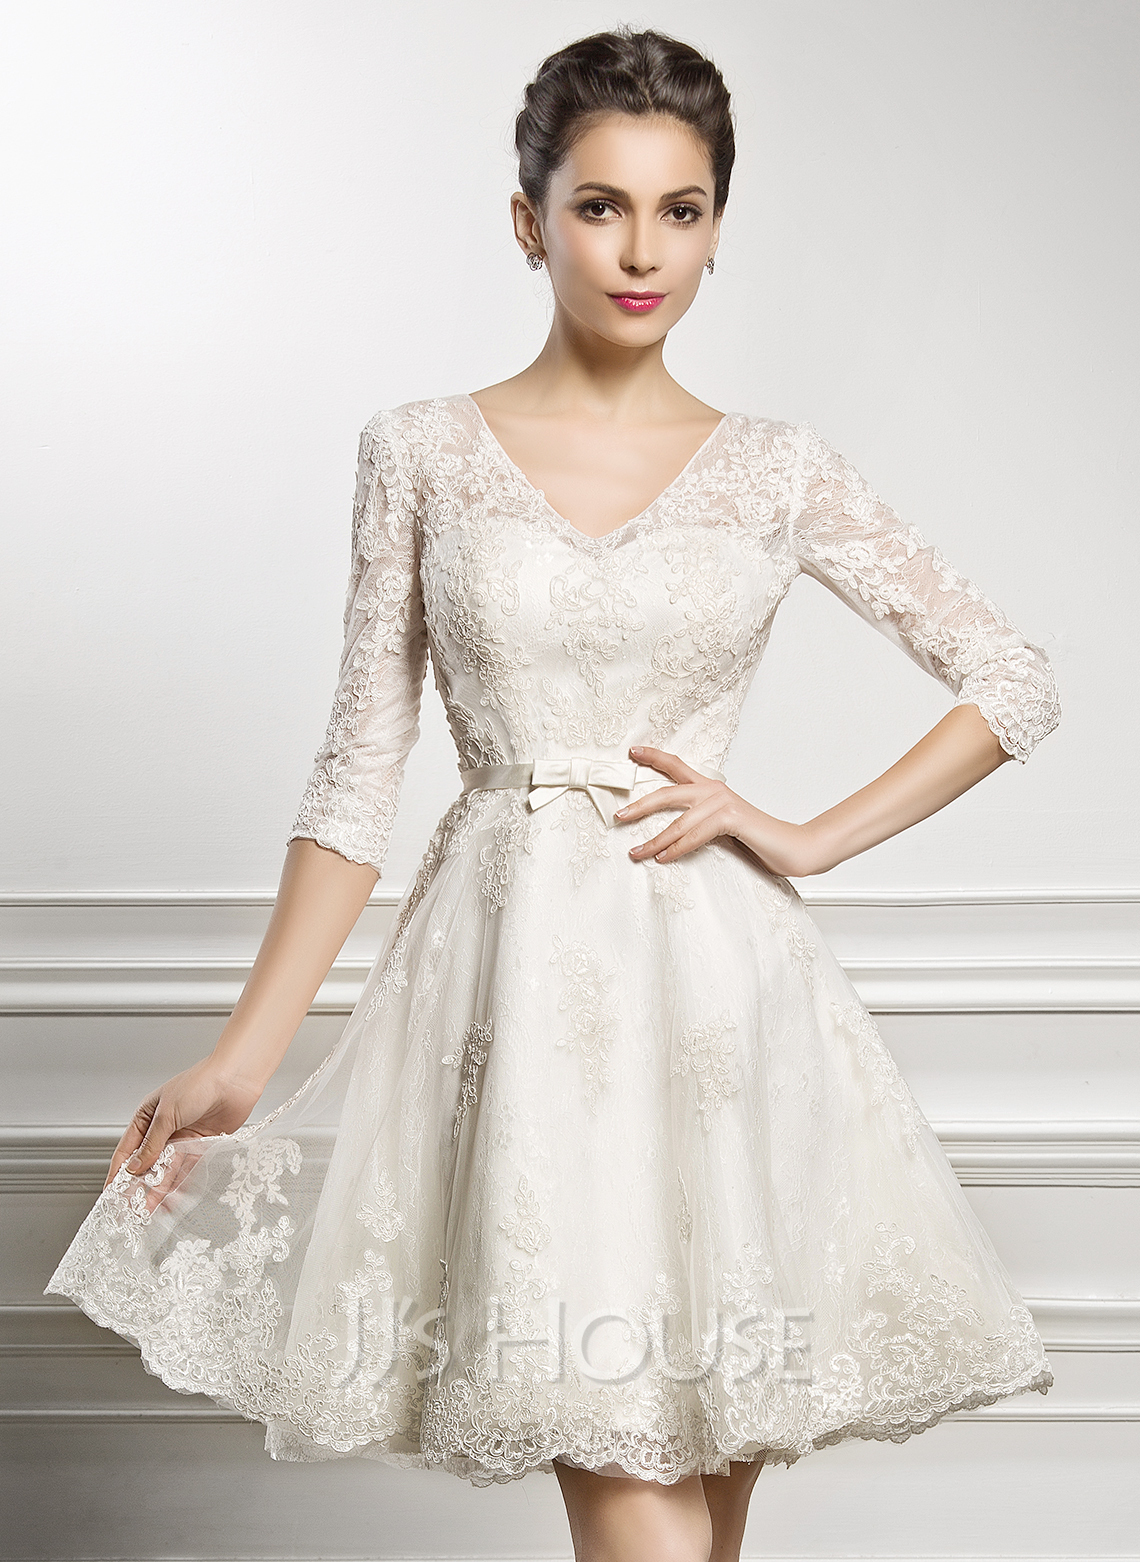 line princess v neck knee length lace wedding dress with bow s